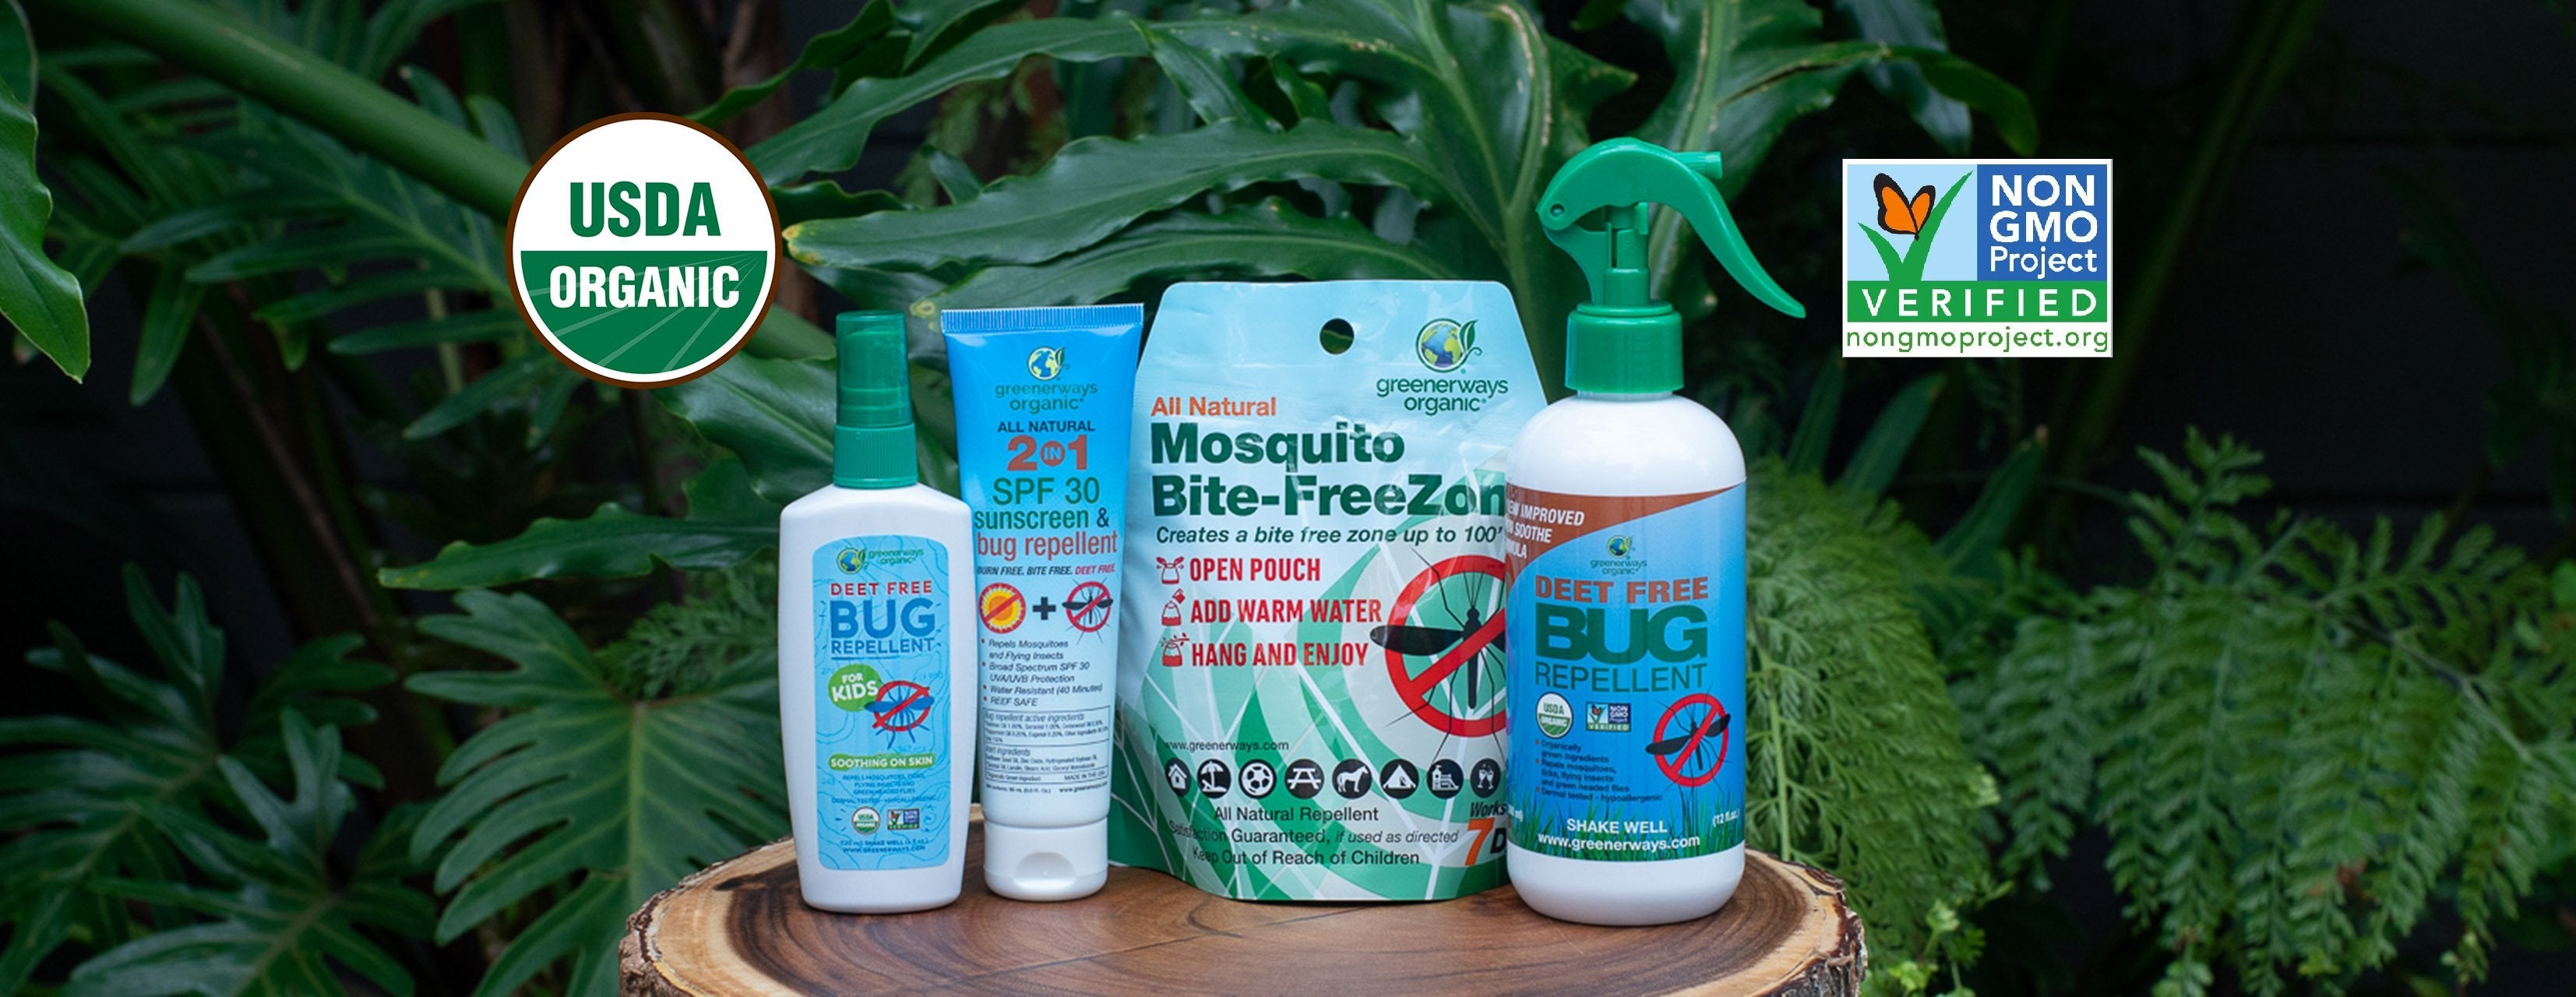 Enjoy the Outdoors Bug-Free!